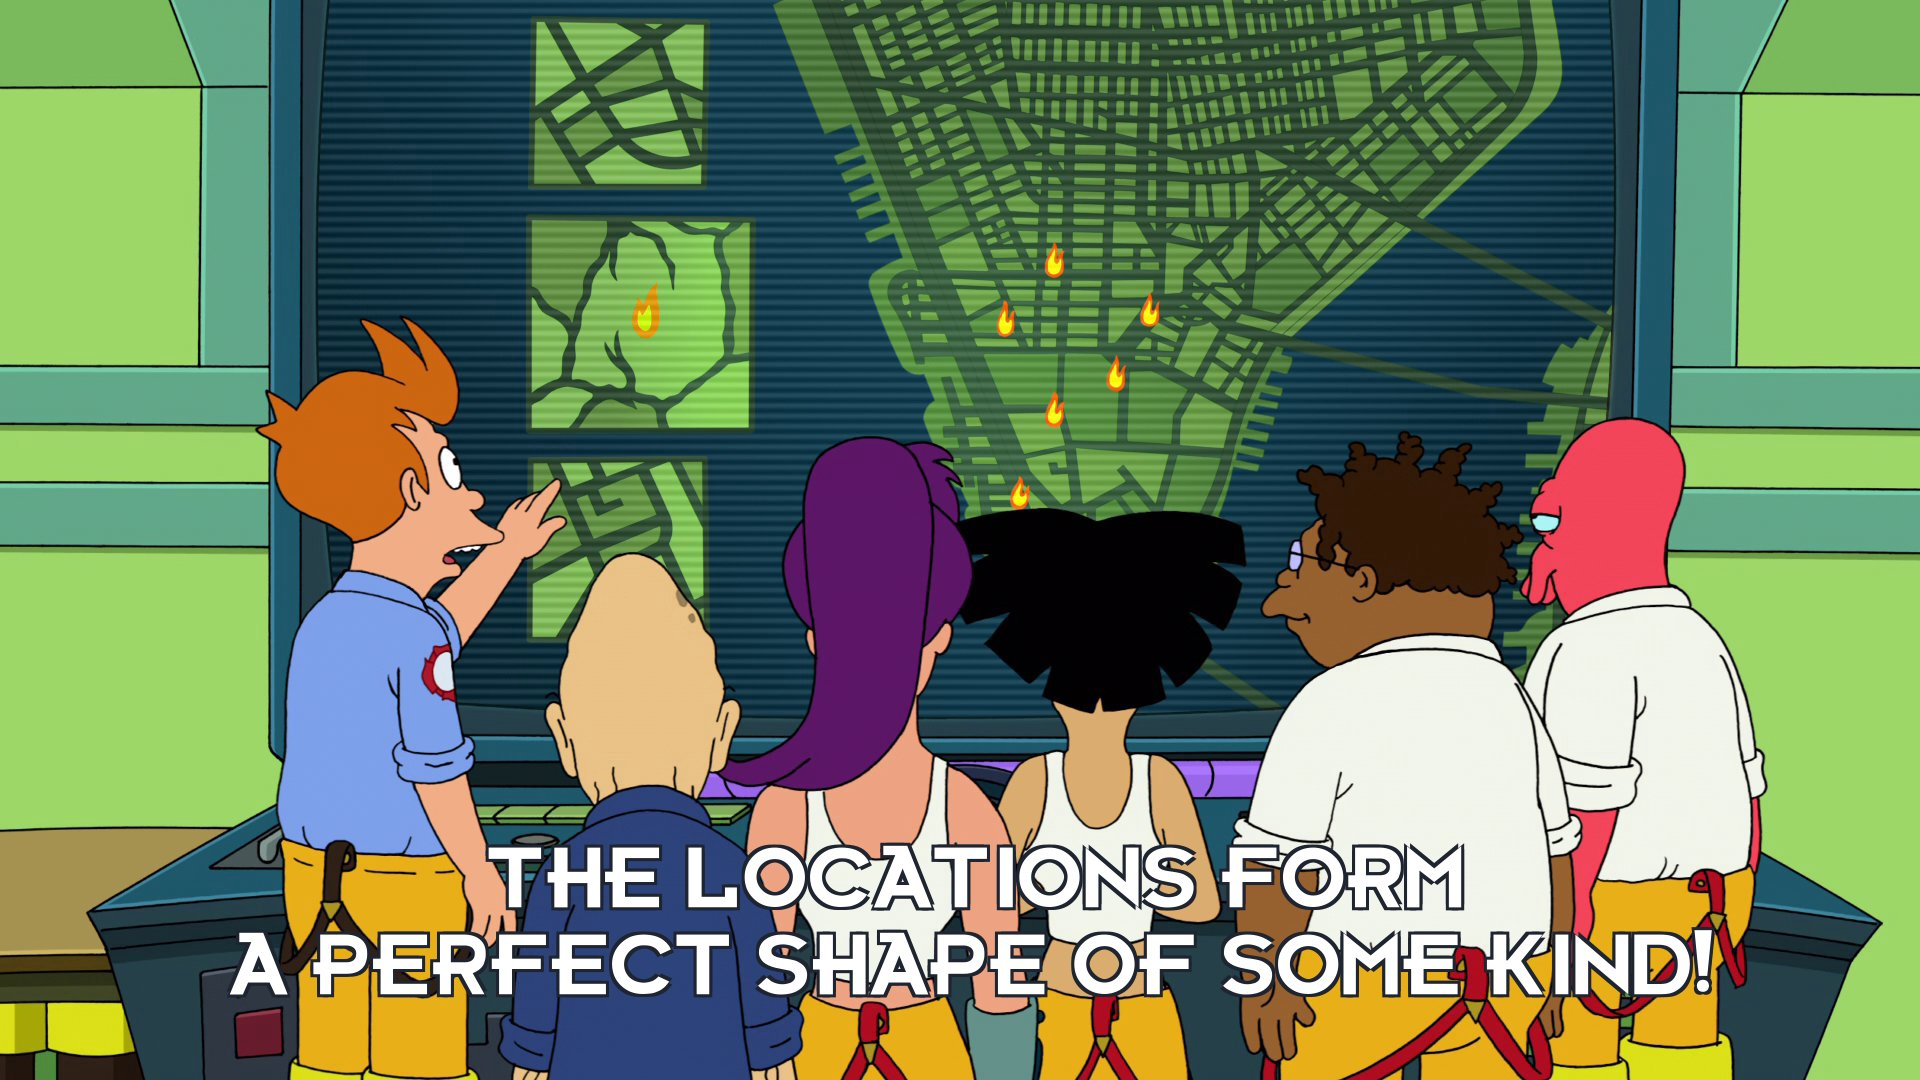 Philip J Fry: The locations form a perfect shape of some kind!